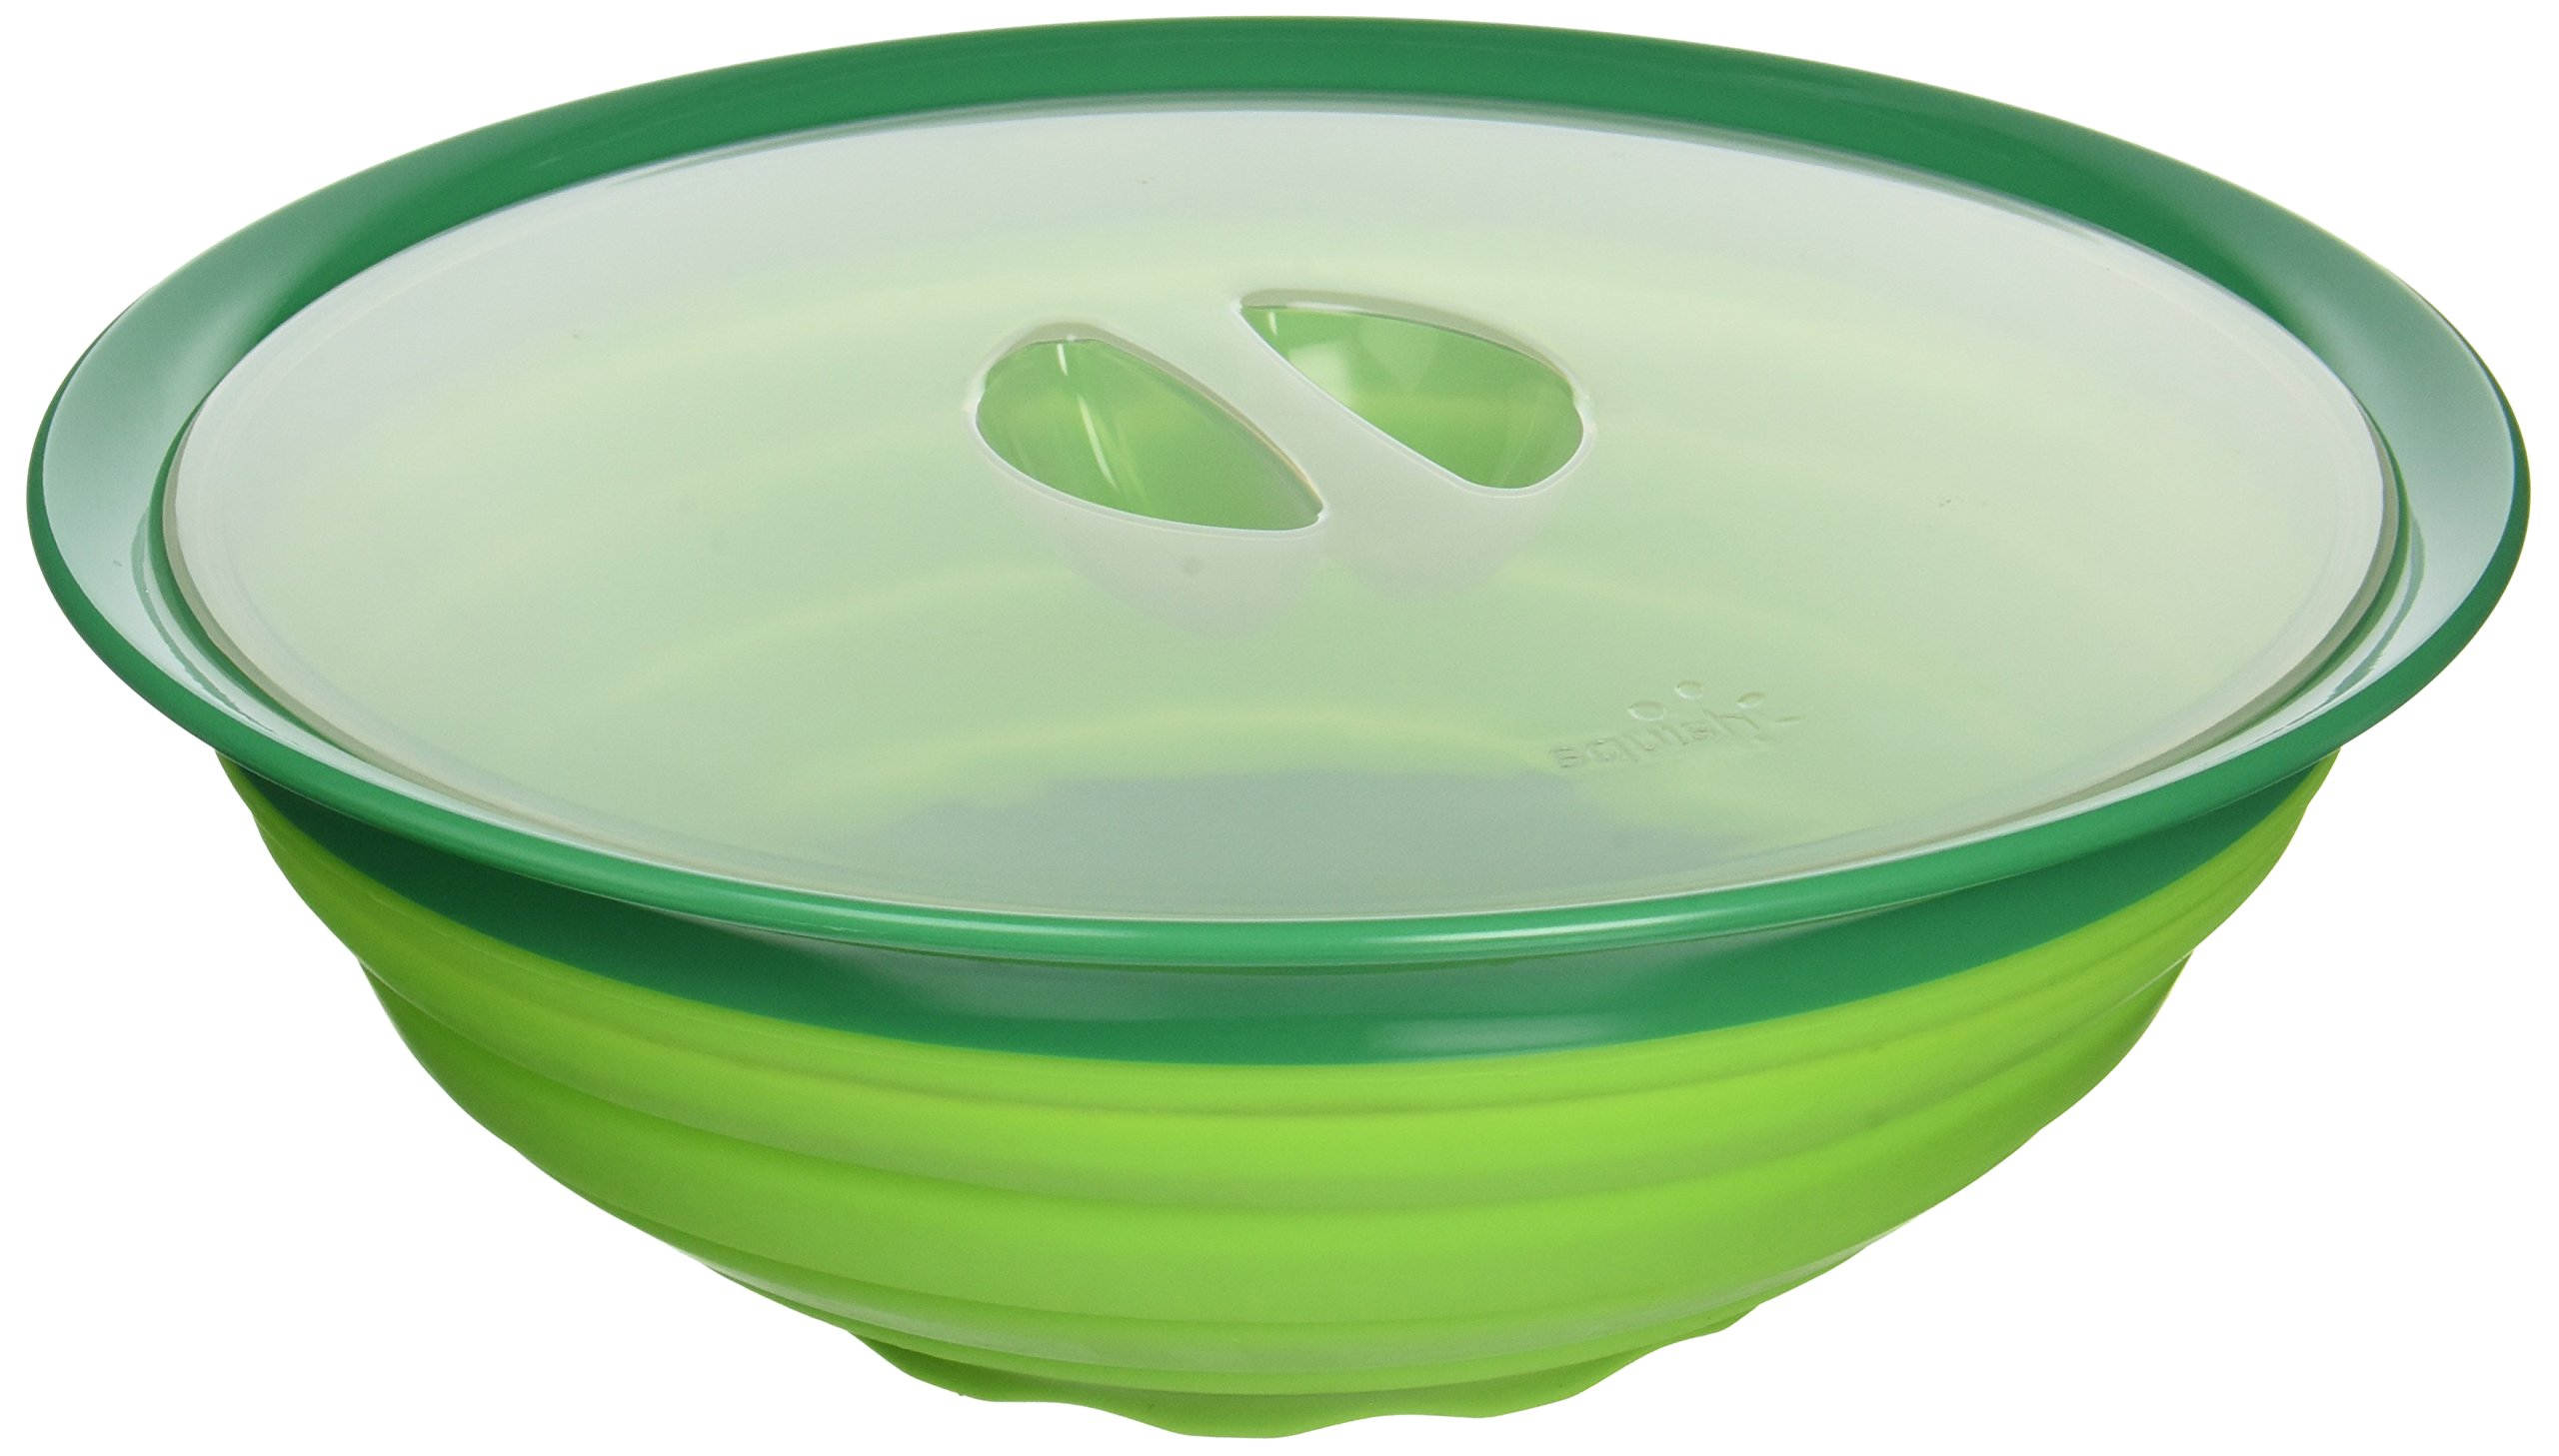 Squish Collapsible Salad Bowl with Lid